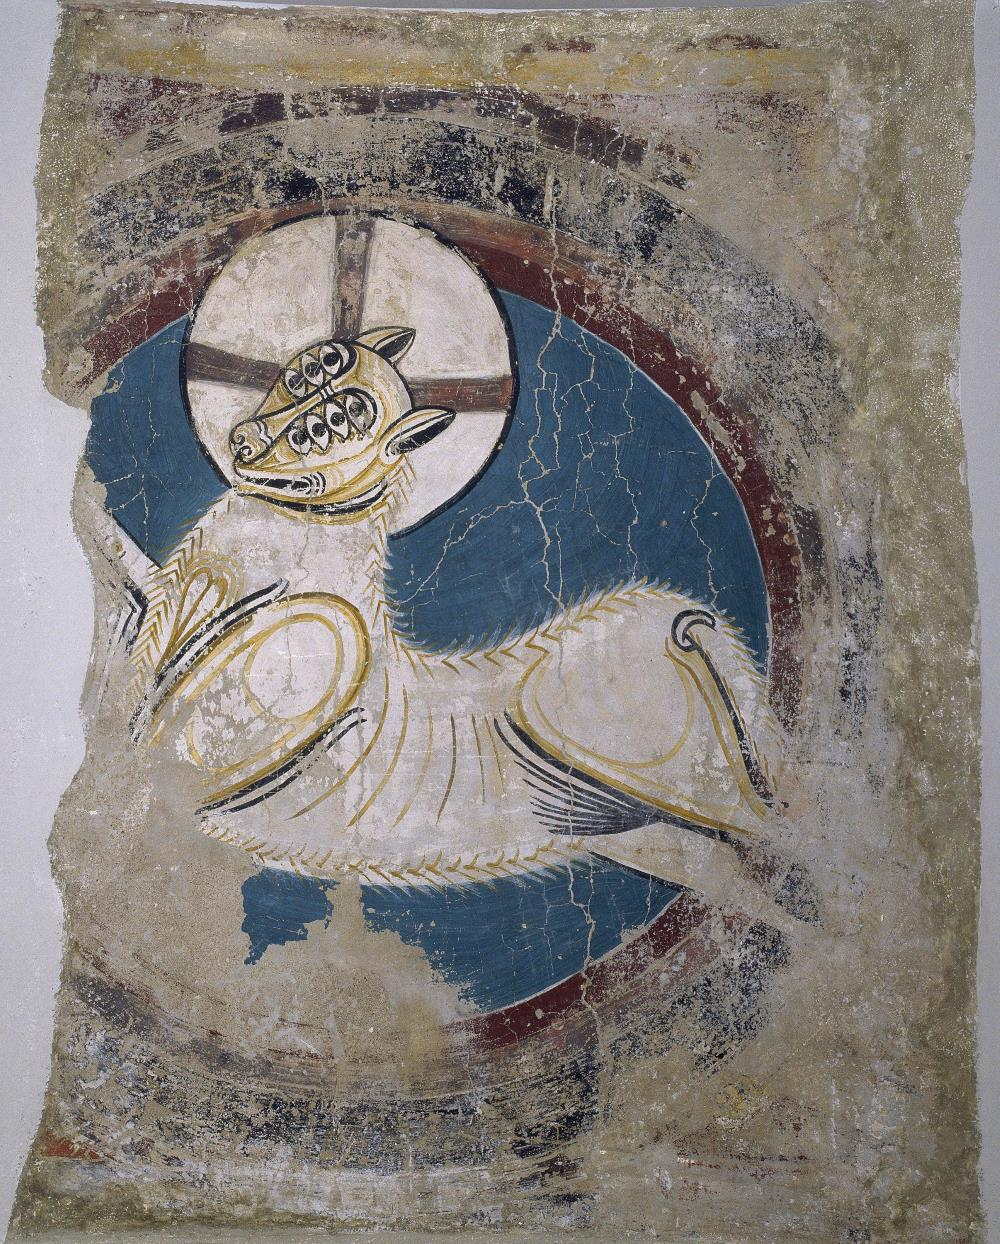 Arch of the Apocalyptic Lamb from Sant Climent de Taüll, circa 1123